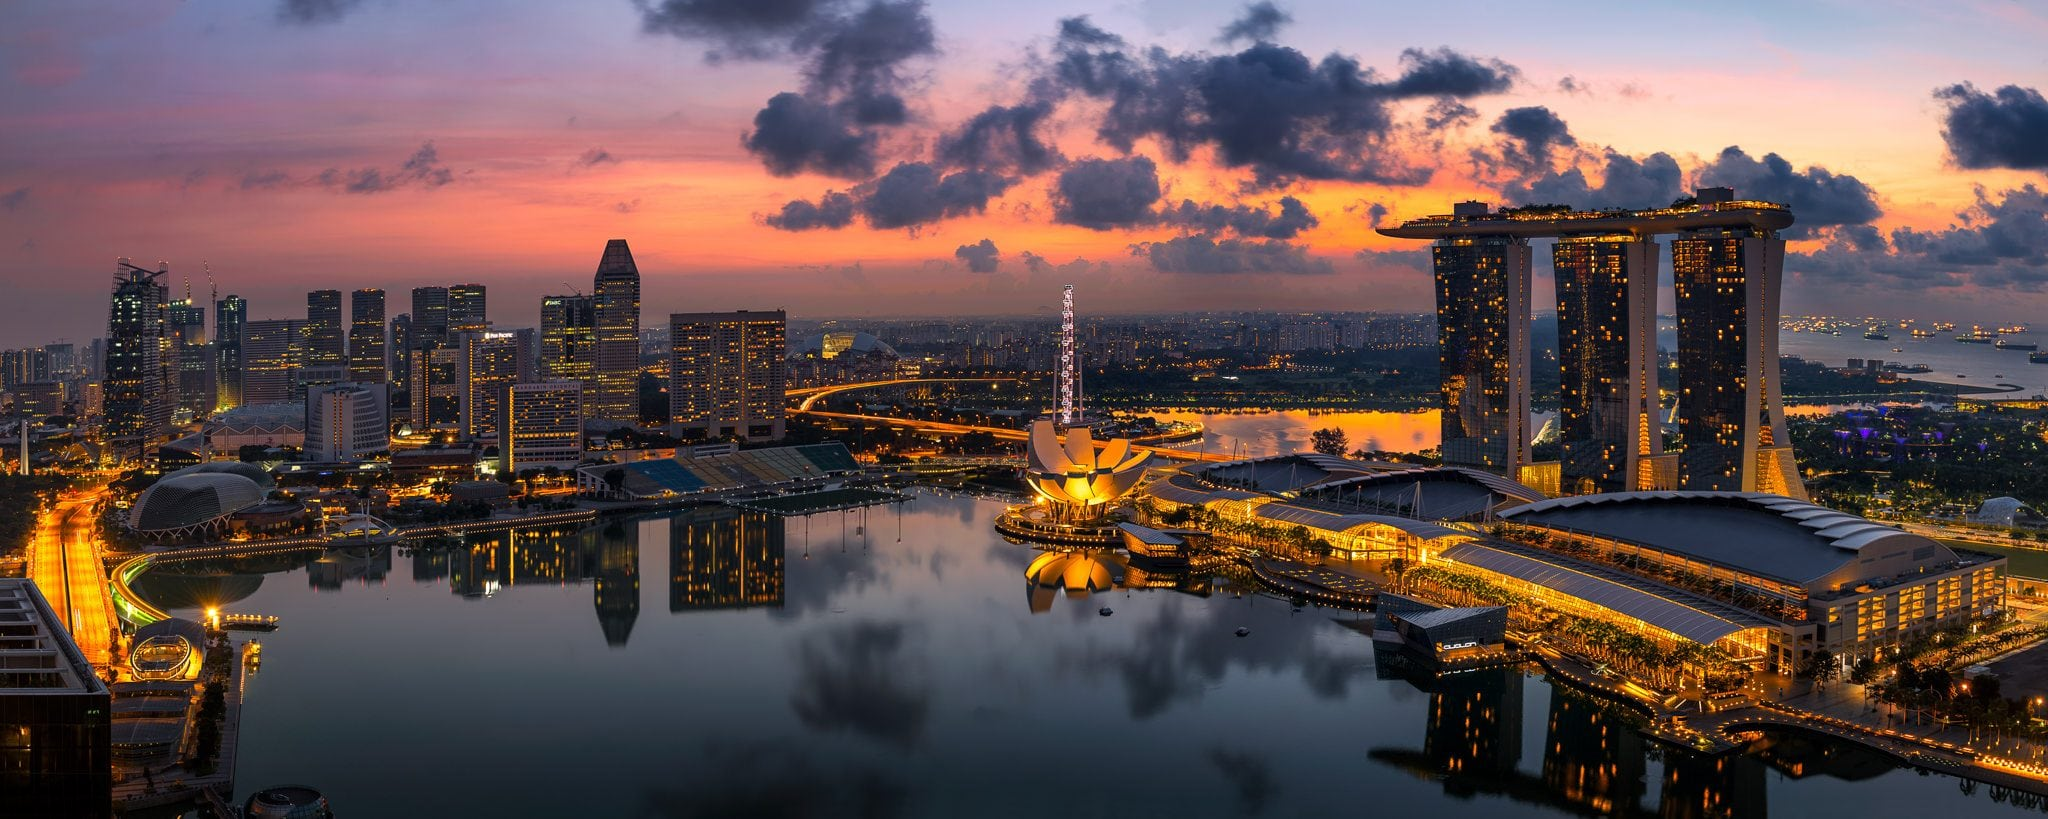 Panoramic view of Singapore Marina, captured at golden sunrise.